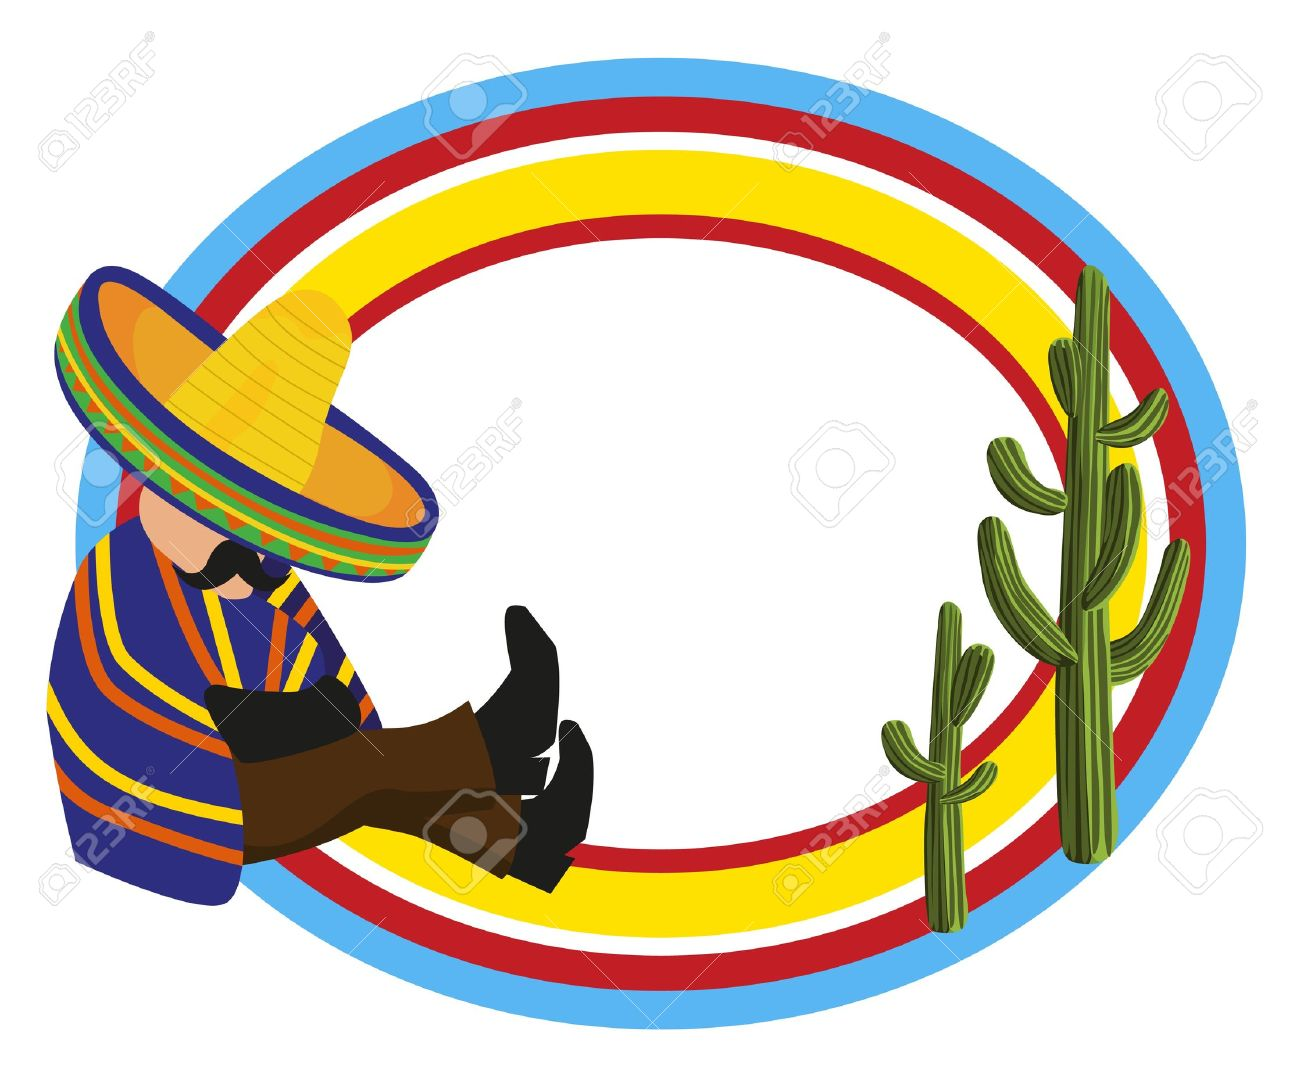 5,869 Spanish Culture Stock Vector Illustration And Royalty Free ...